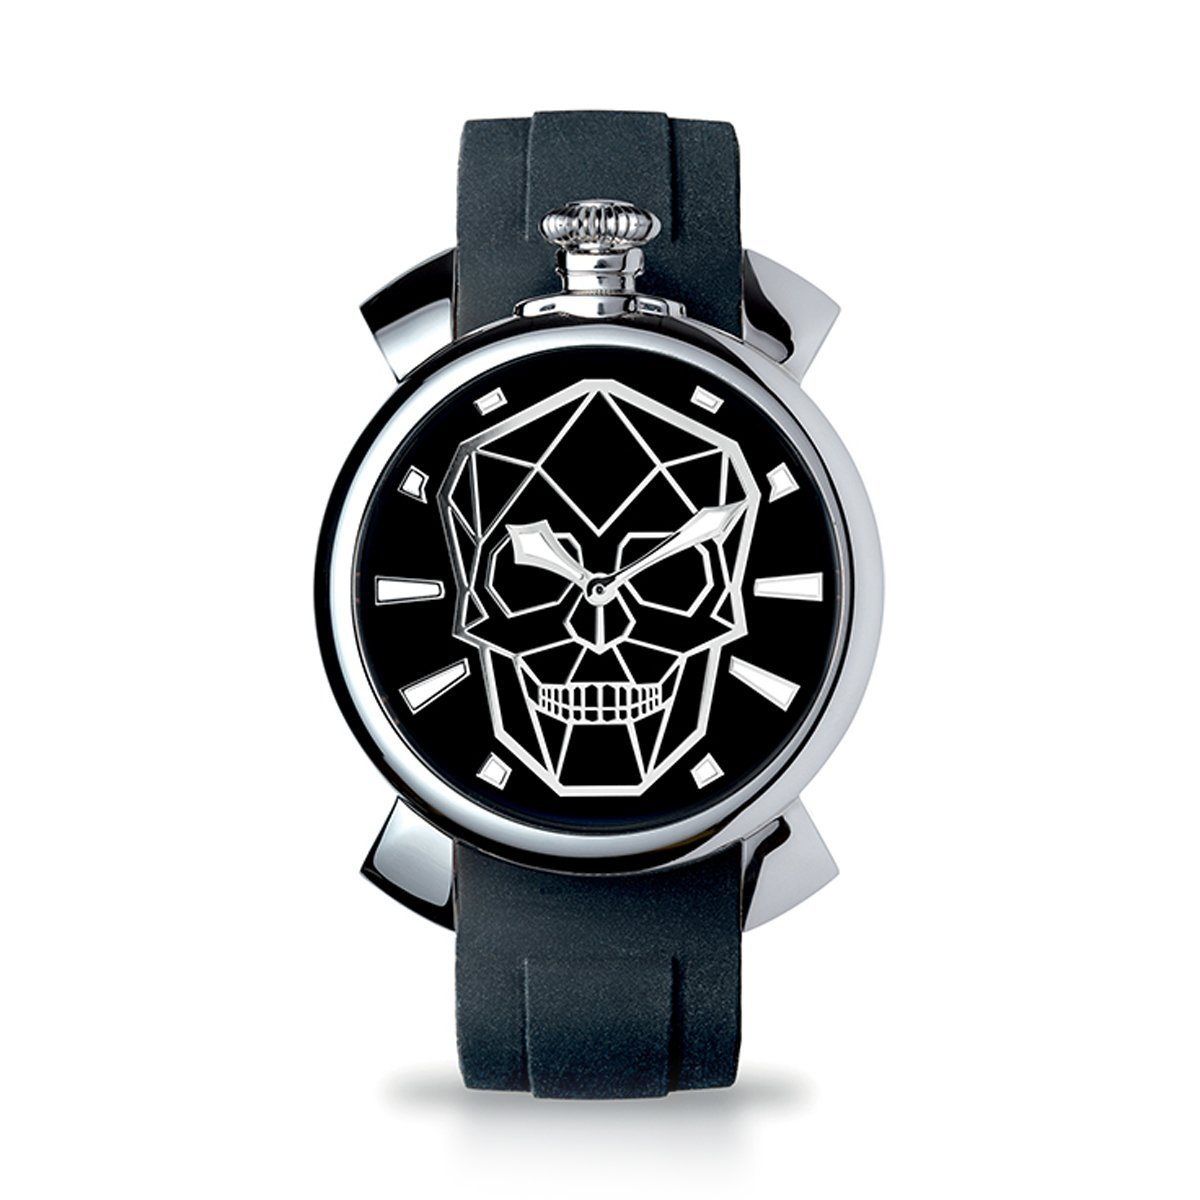 Gaga Milano Slim 46 Bionic Skull Black - Watches & Crystals